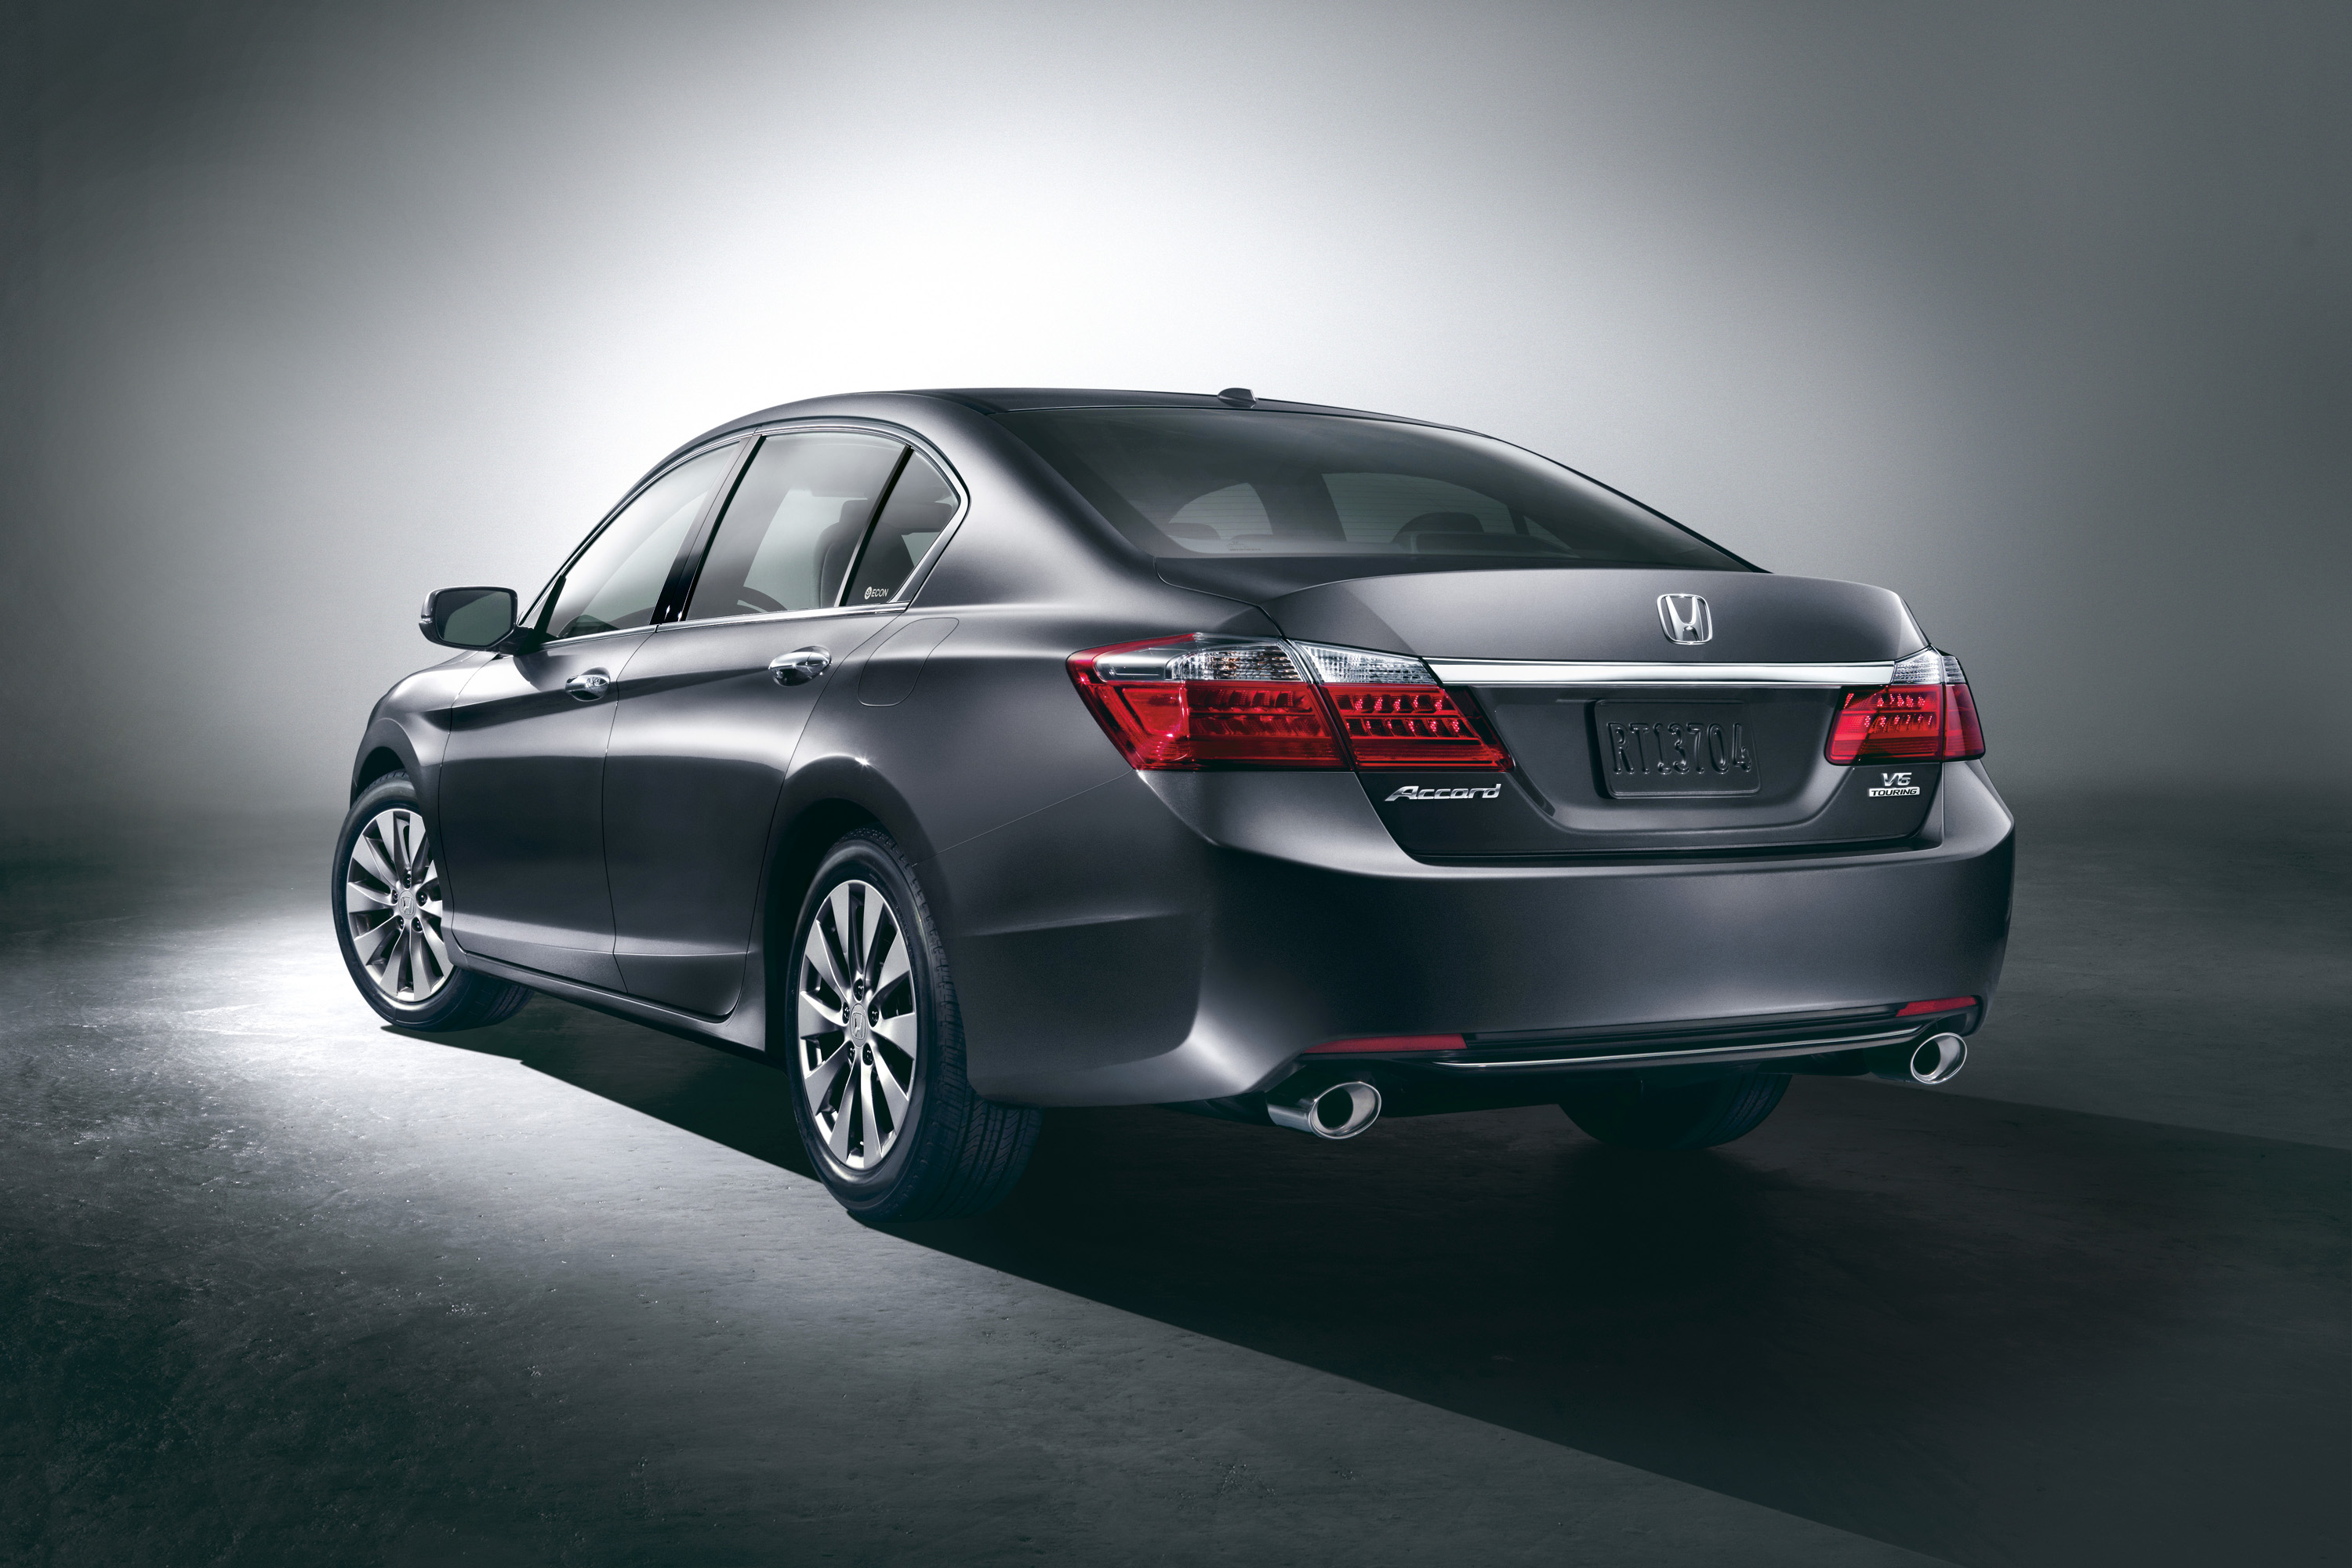 Honda Accord photo 02